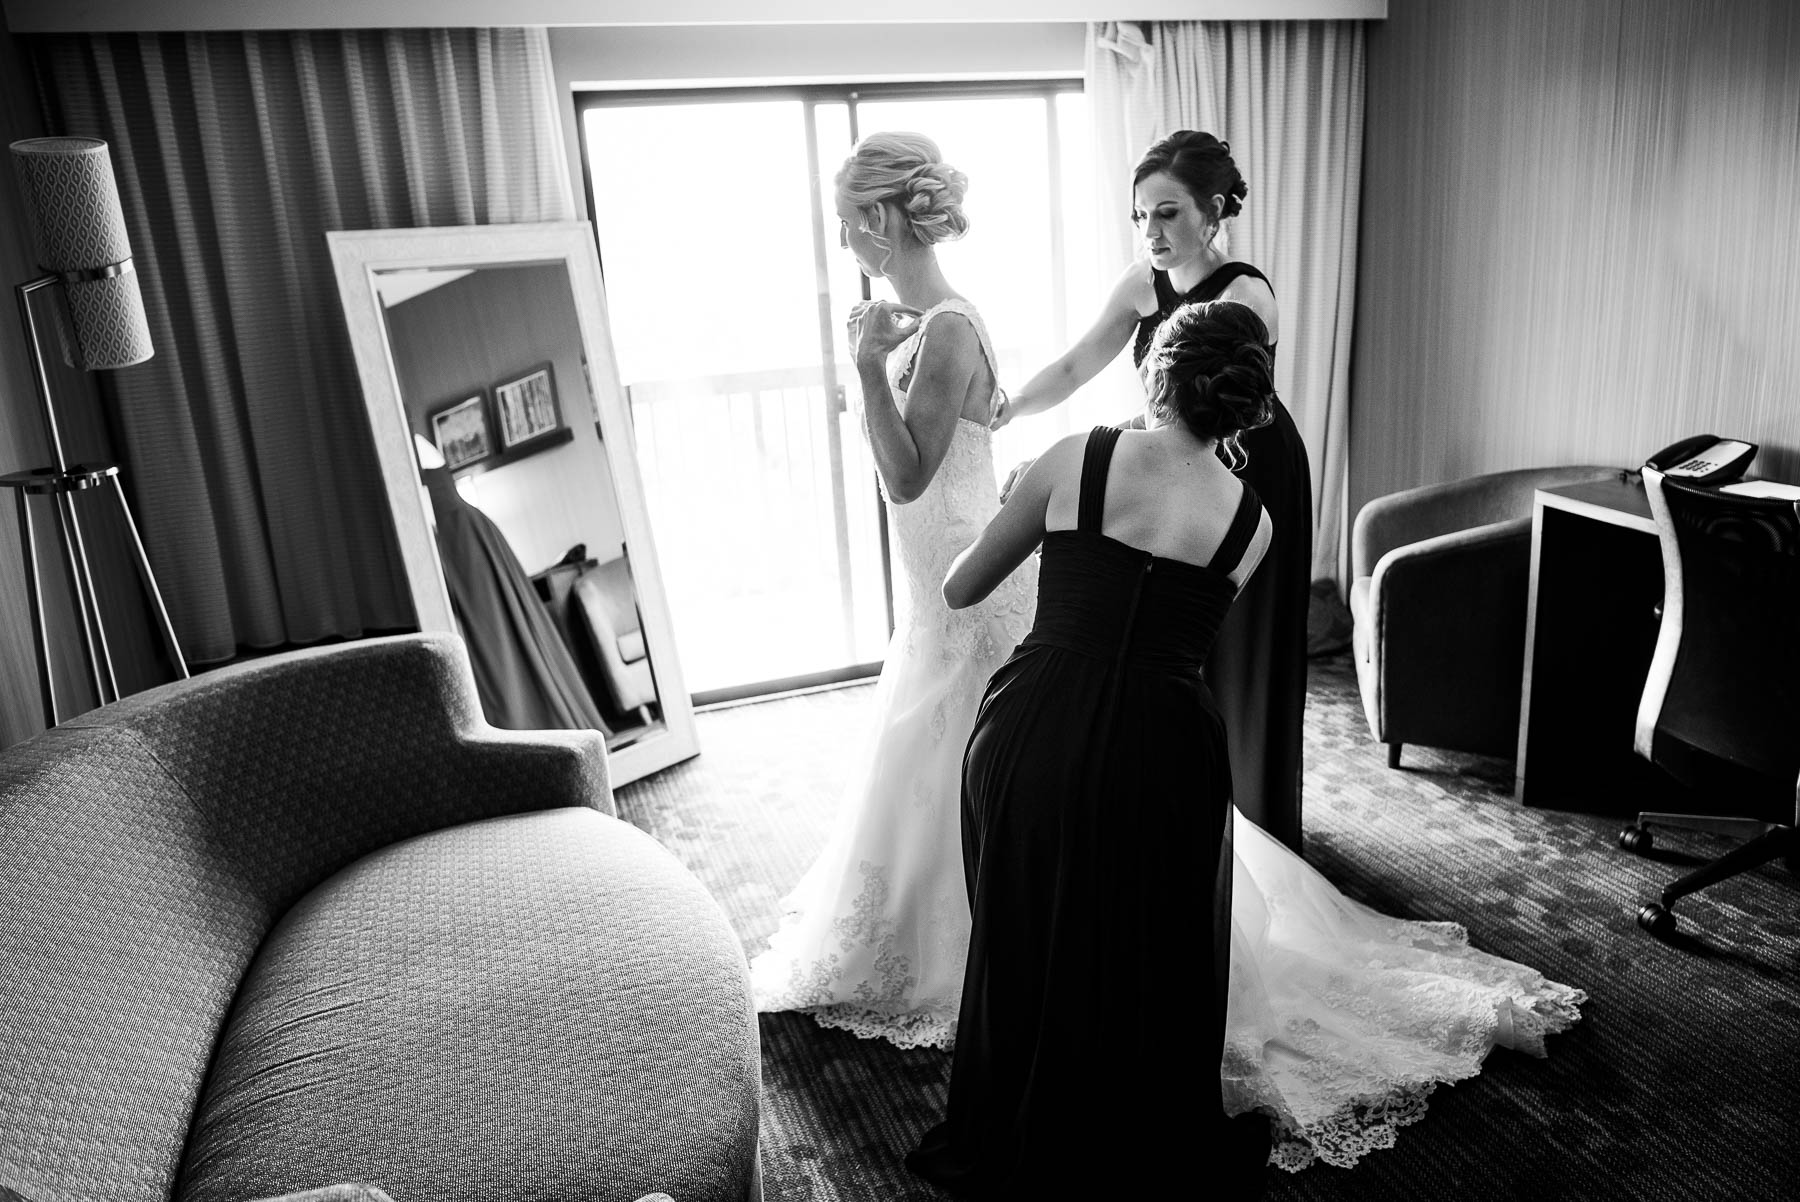 Bridesmaids help the bride get ready on her wedding day.